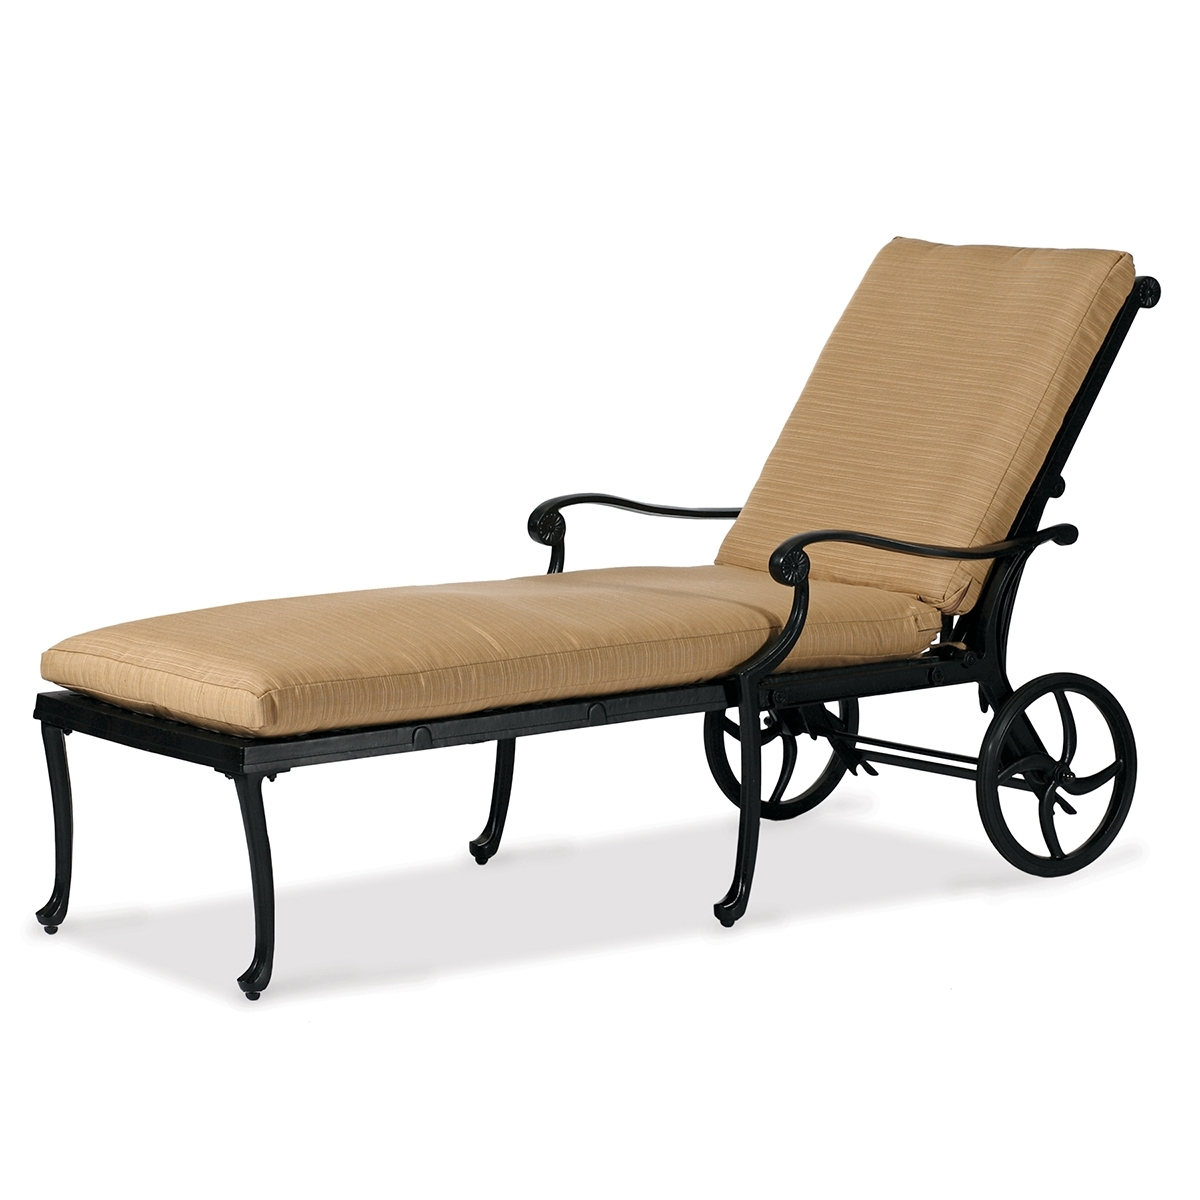 Hedges Collection Pertaining To Aluminum Chaise Lounge Chairs (View 9 of 15)